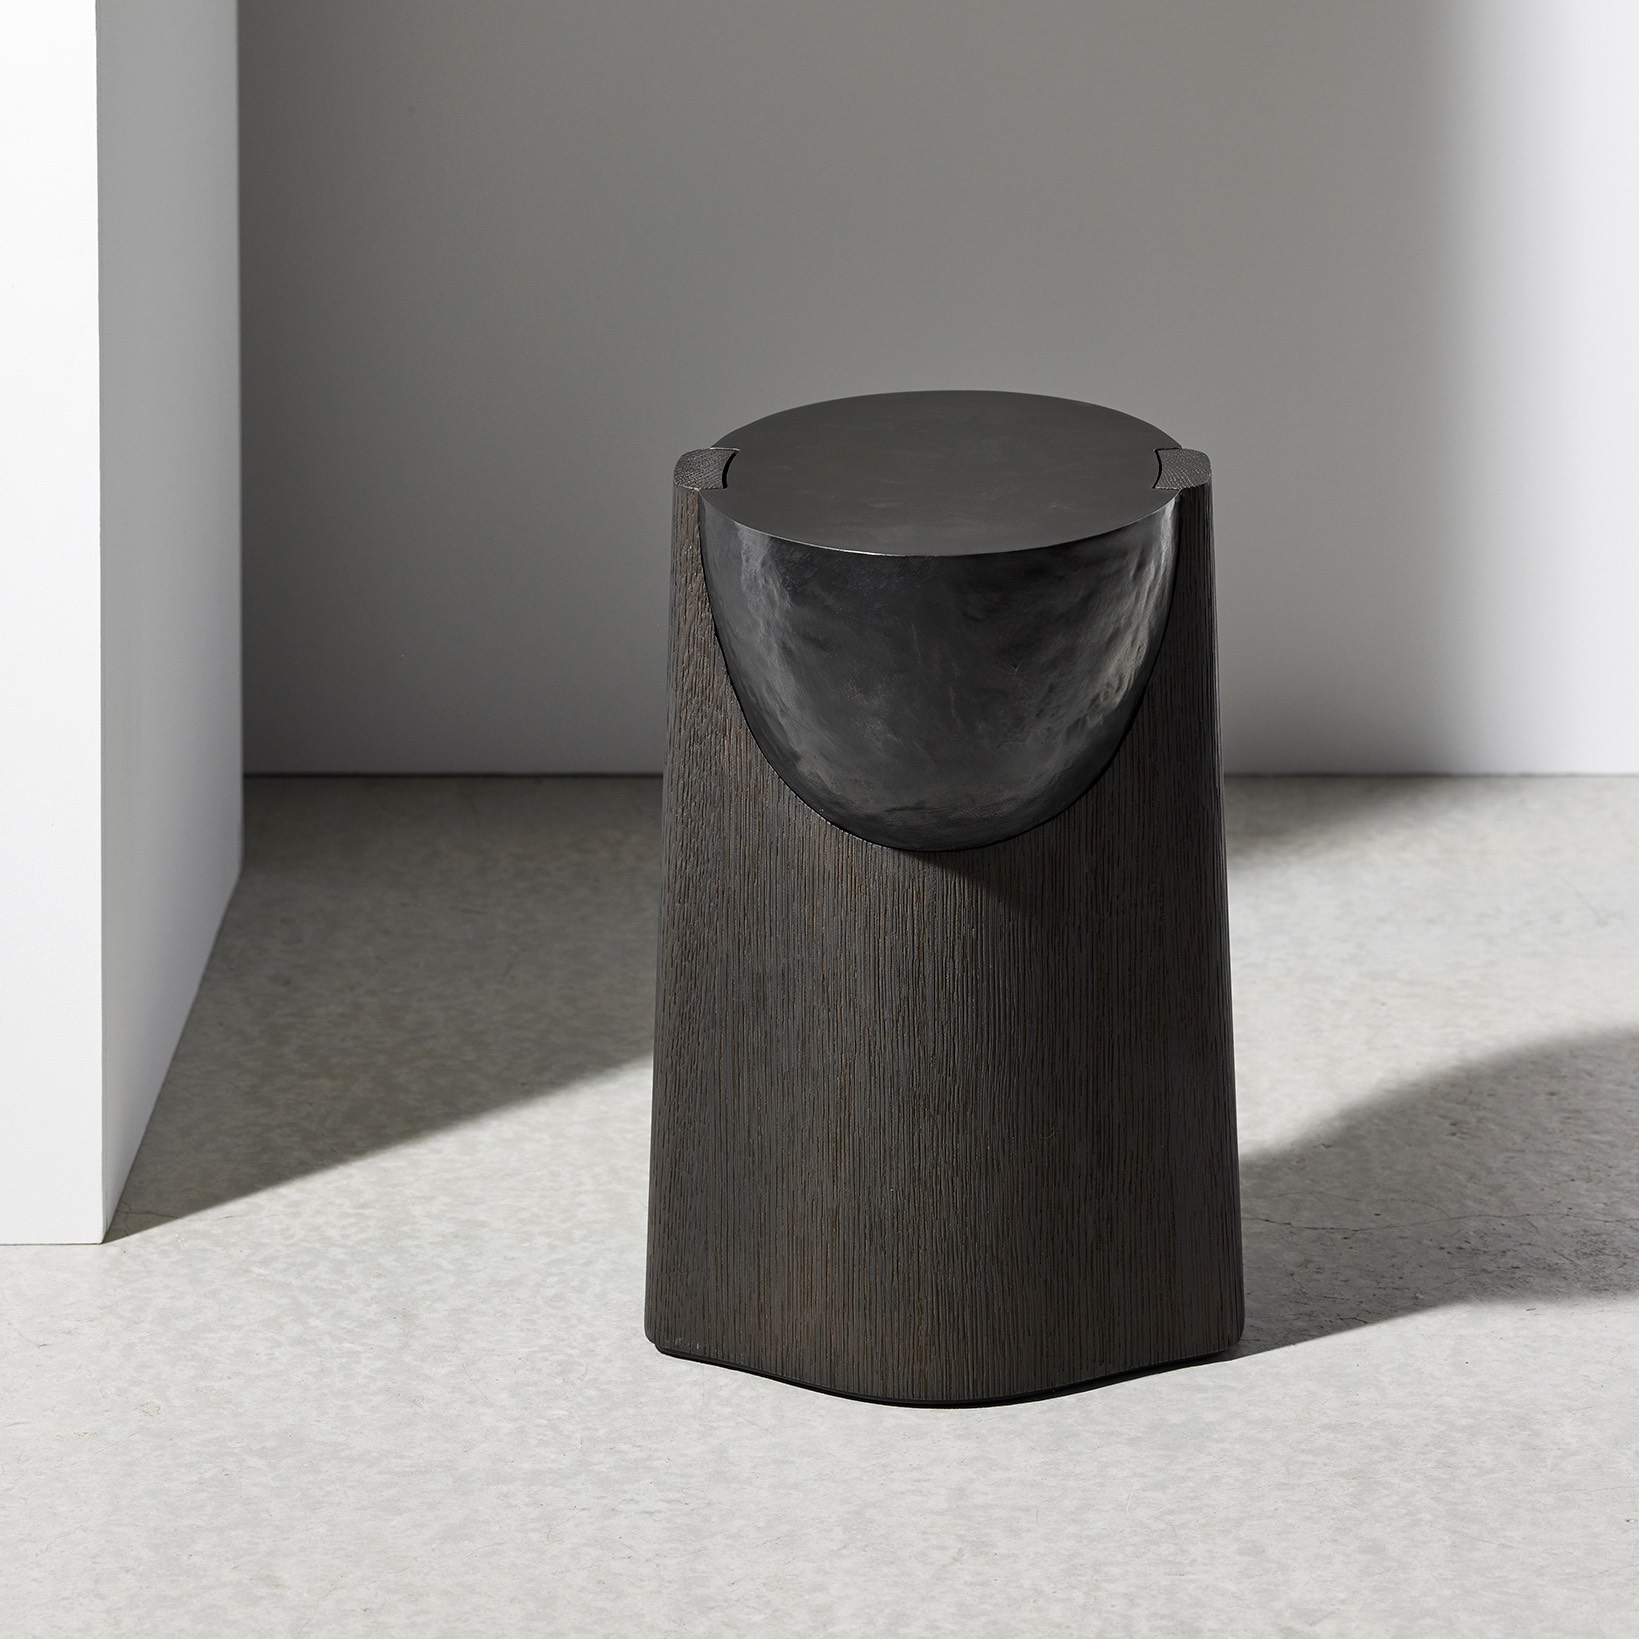 AKRA-sidetable-design-dan-yeffet-collection-particuliere